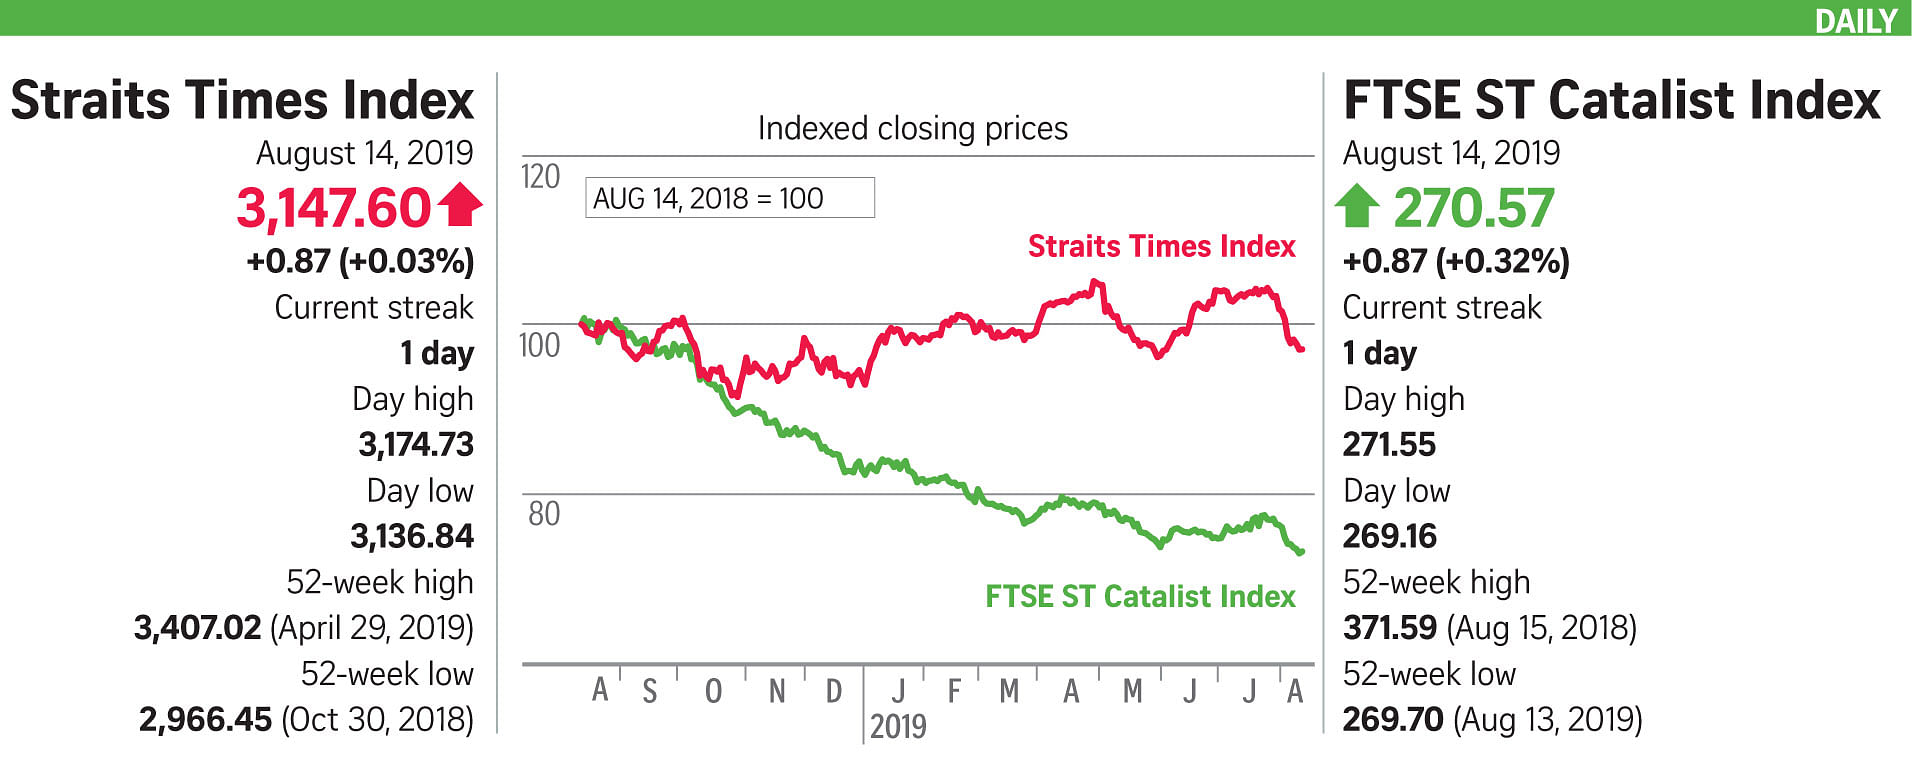 STI ends flat after early momentum fizzles out, Companies